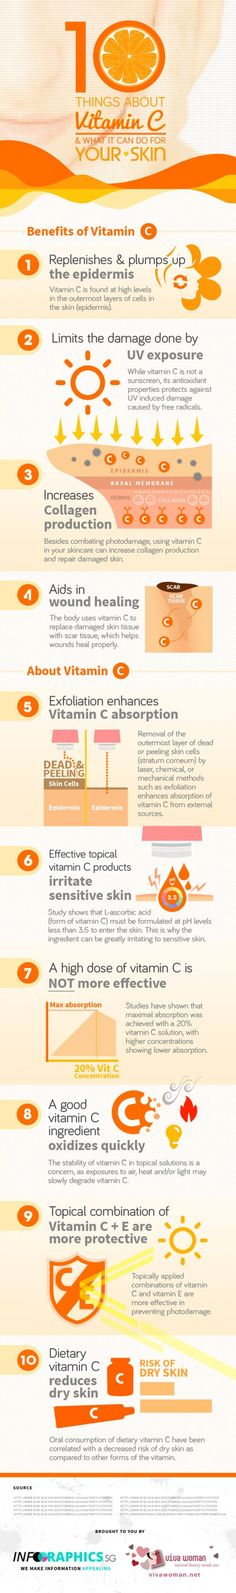 10 Things About Vitamin C – Learn more about how to add Vitamin C Serums into your routine with Skincarisma. Follow us and this board as we start creating educational infographics!